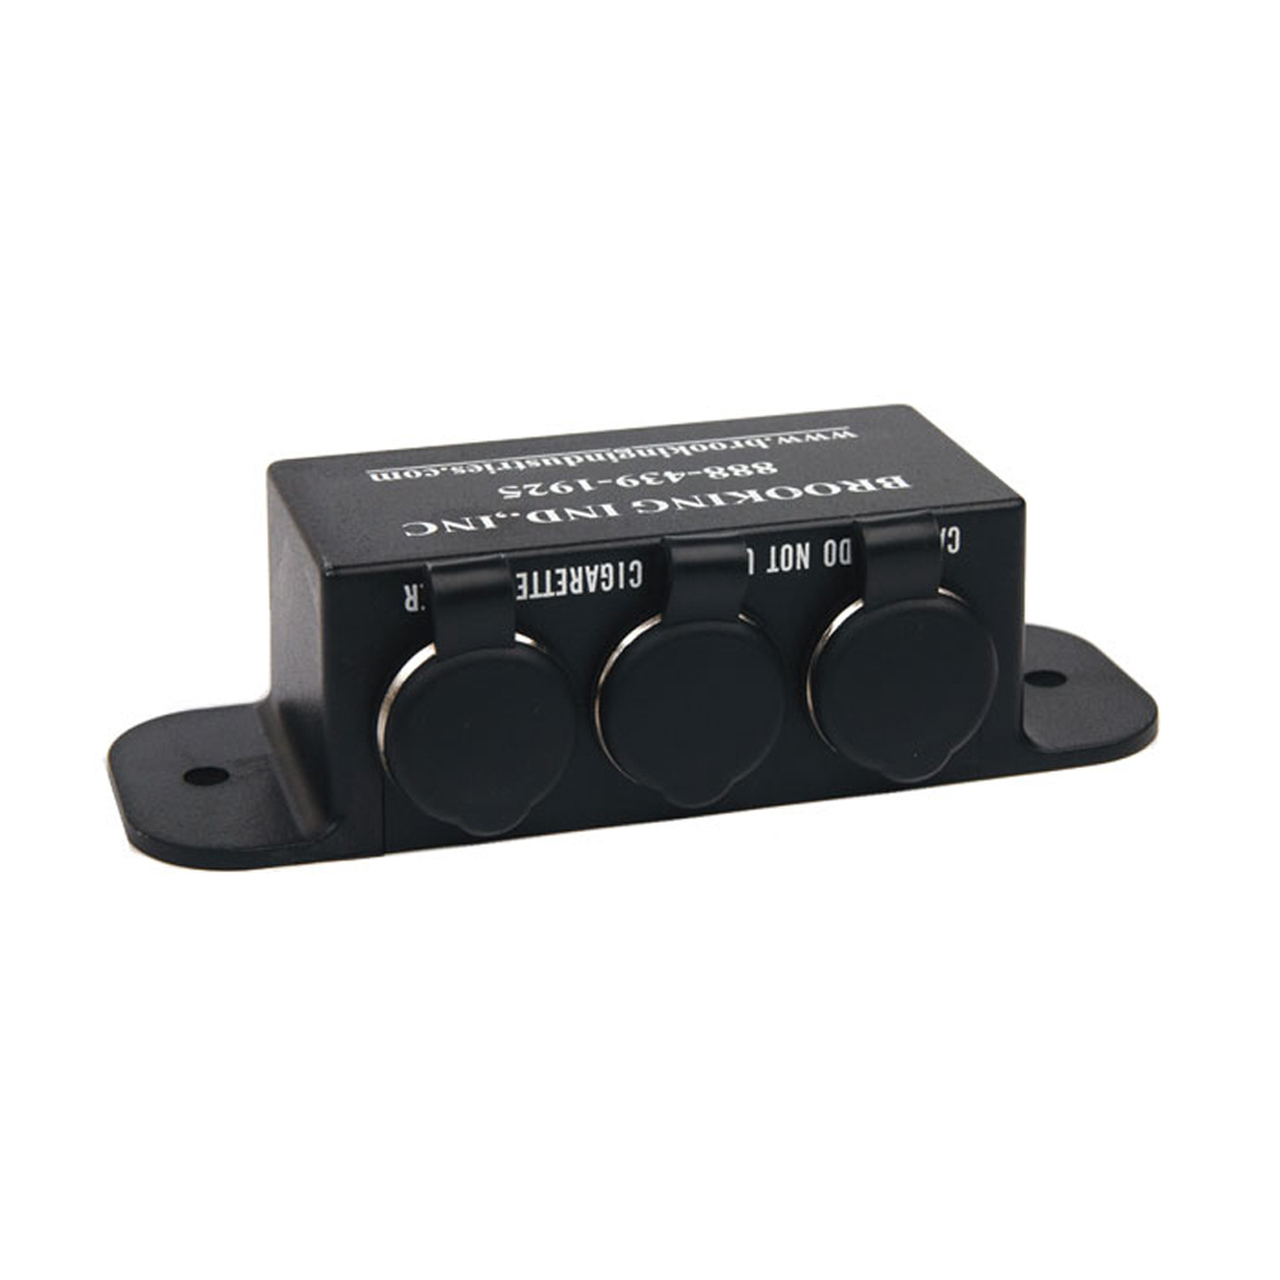 Brooking 3 Hole Outlet Box Console Accessory with Flange mount, Choose Hardwire or Cigar Plug Model